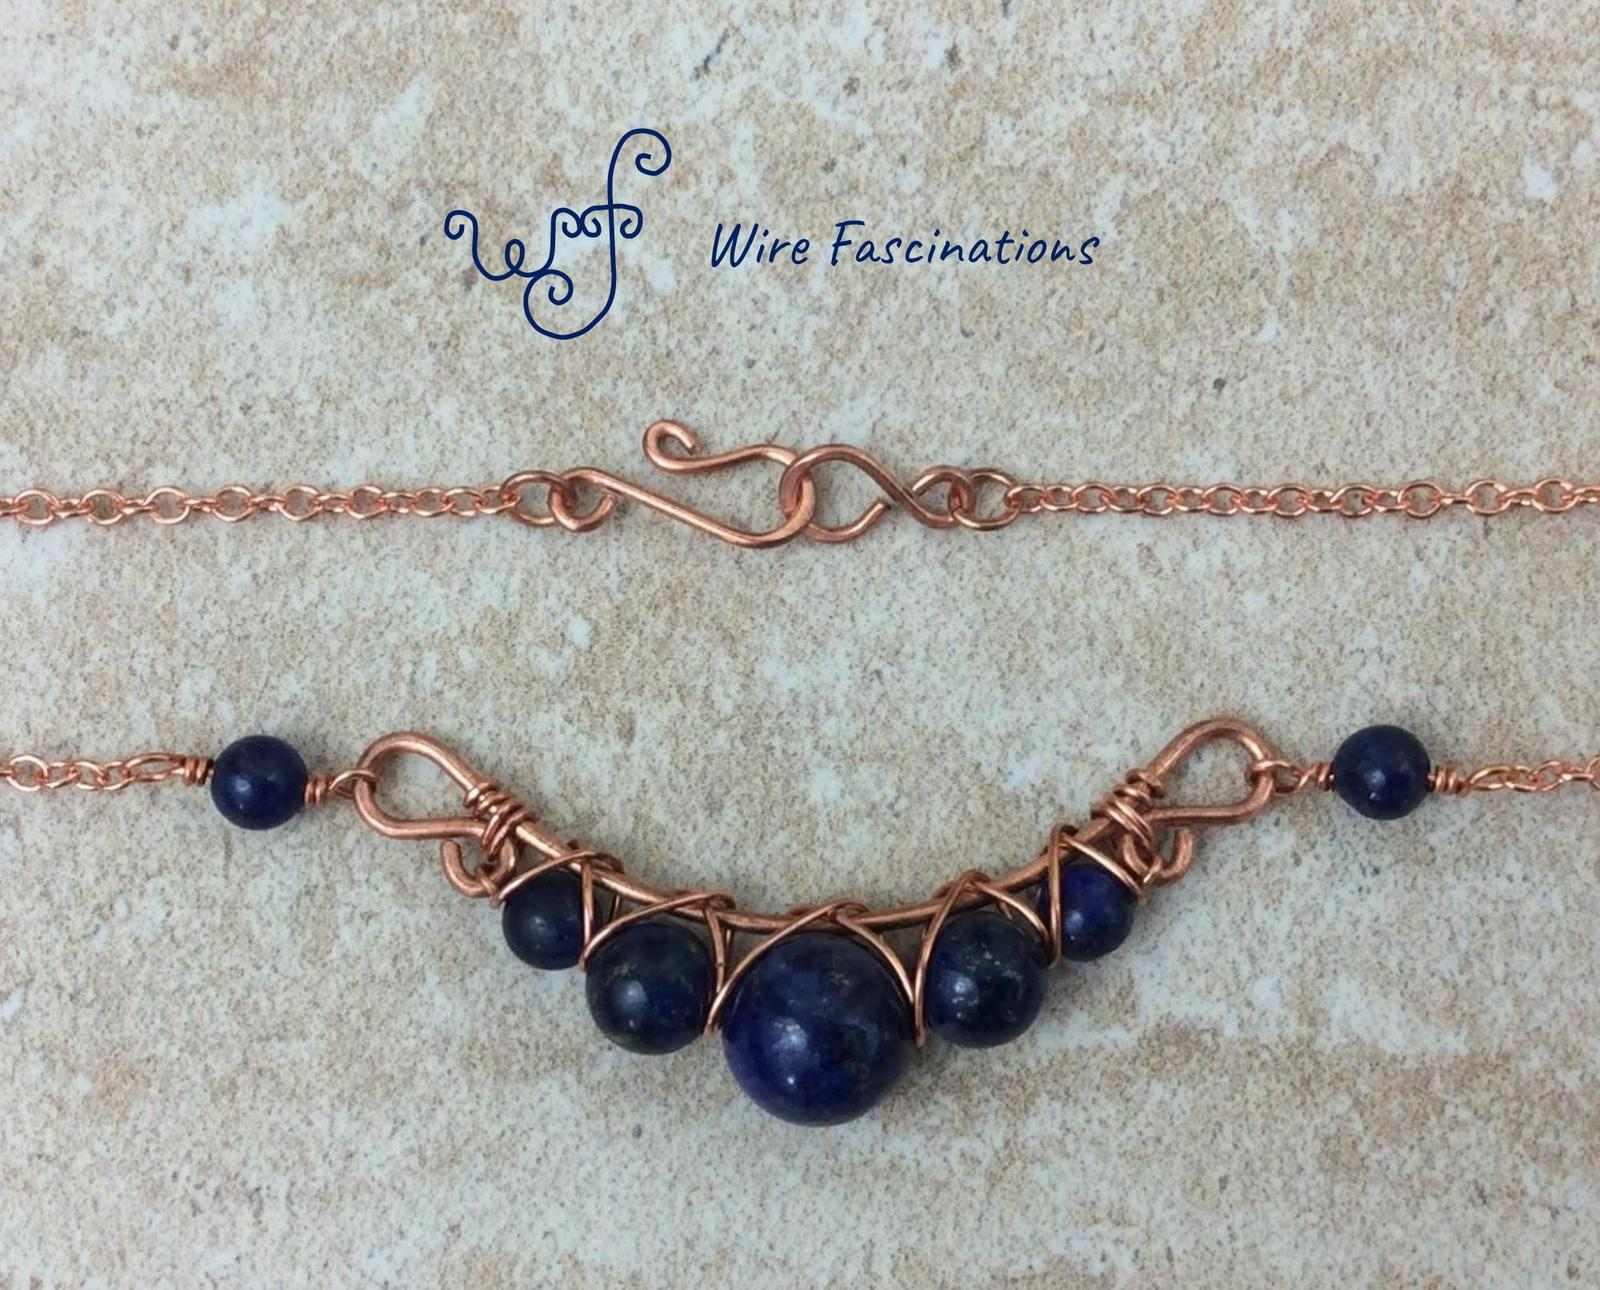 Handmade lapis lazuli necklace: criss cross copper wire wrapped image 7